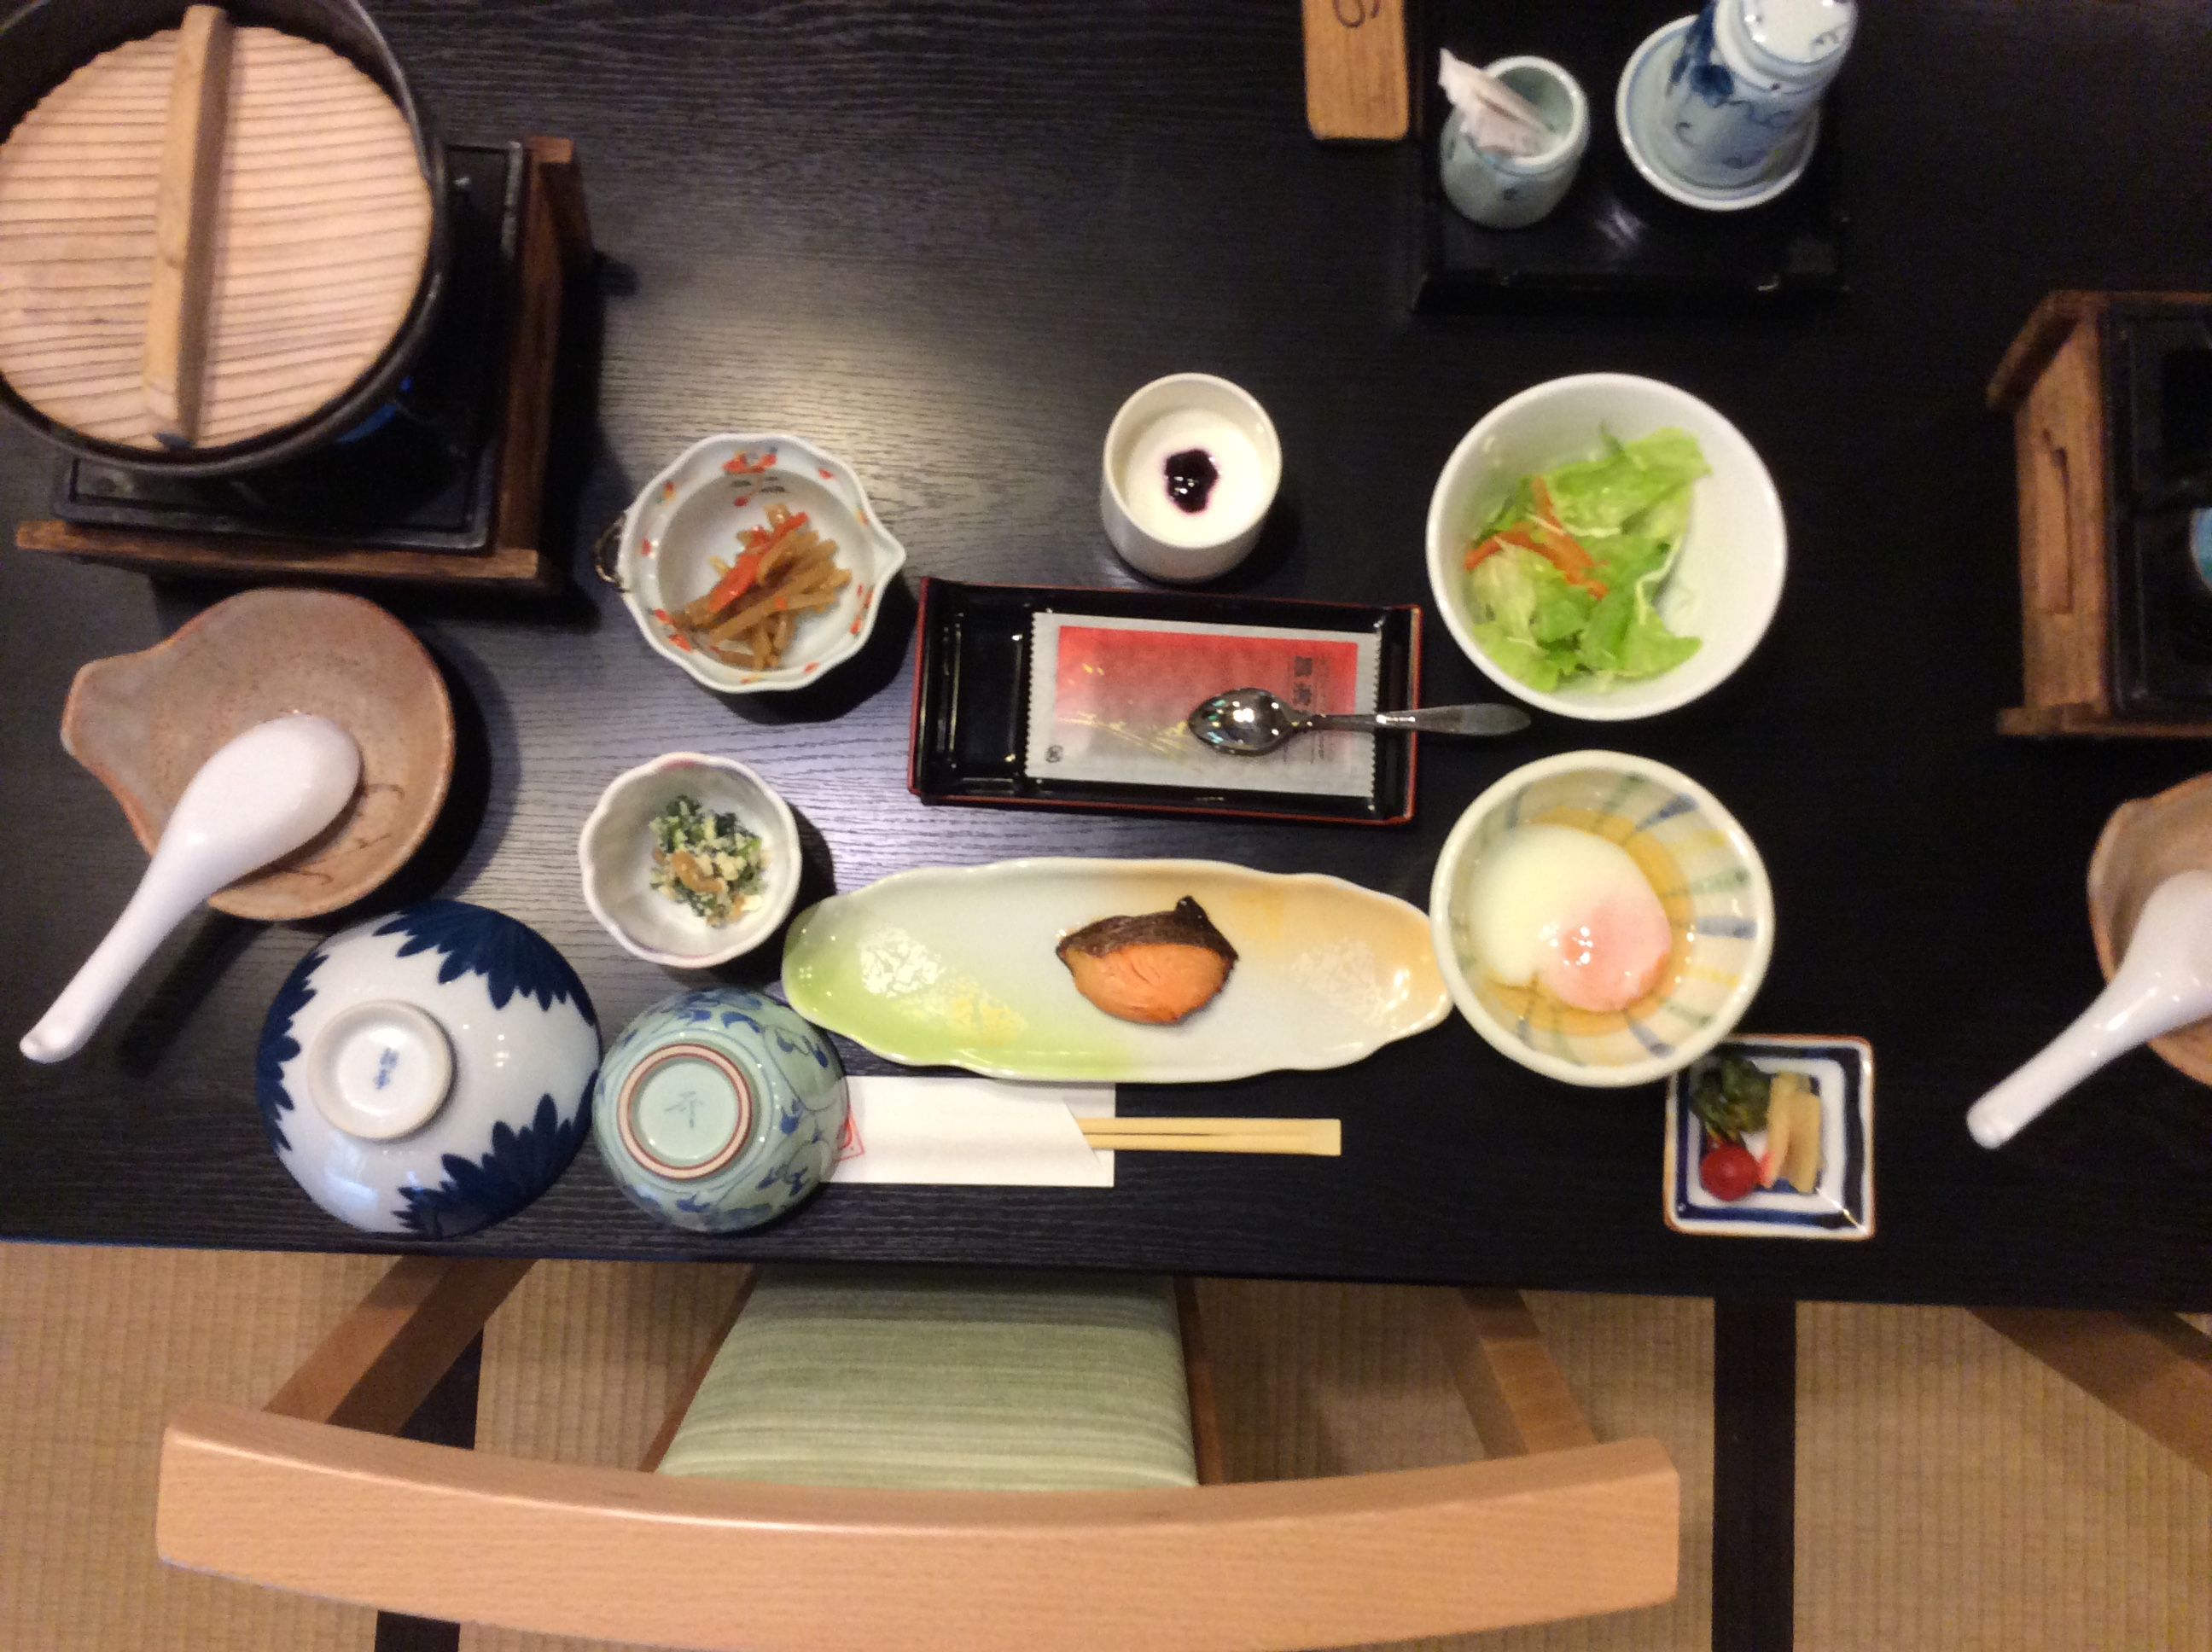 Japanese food set out on a table